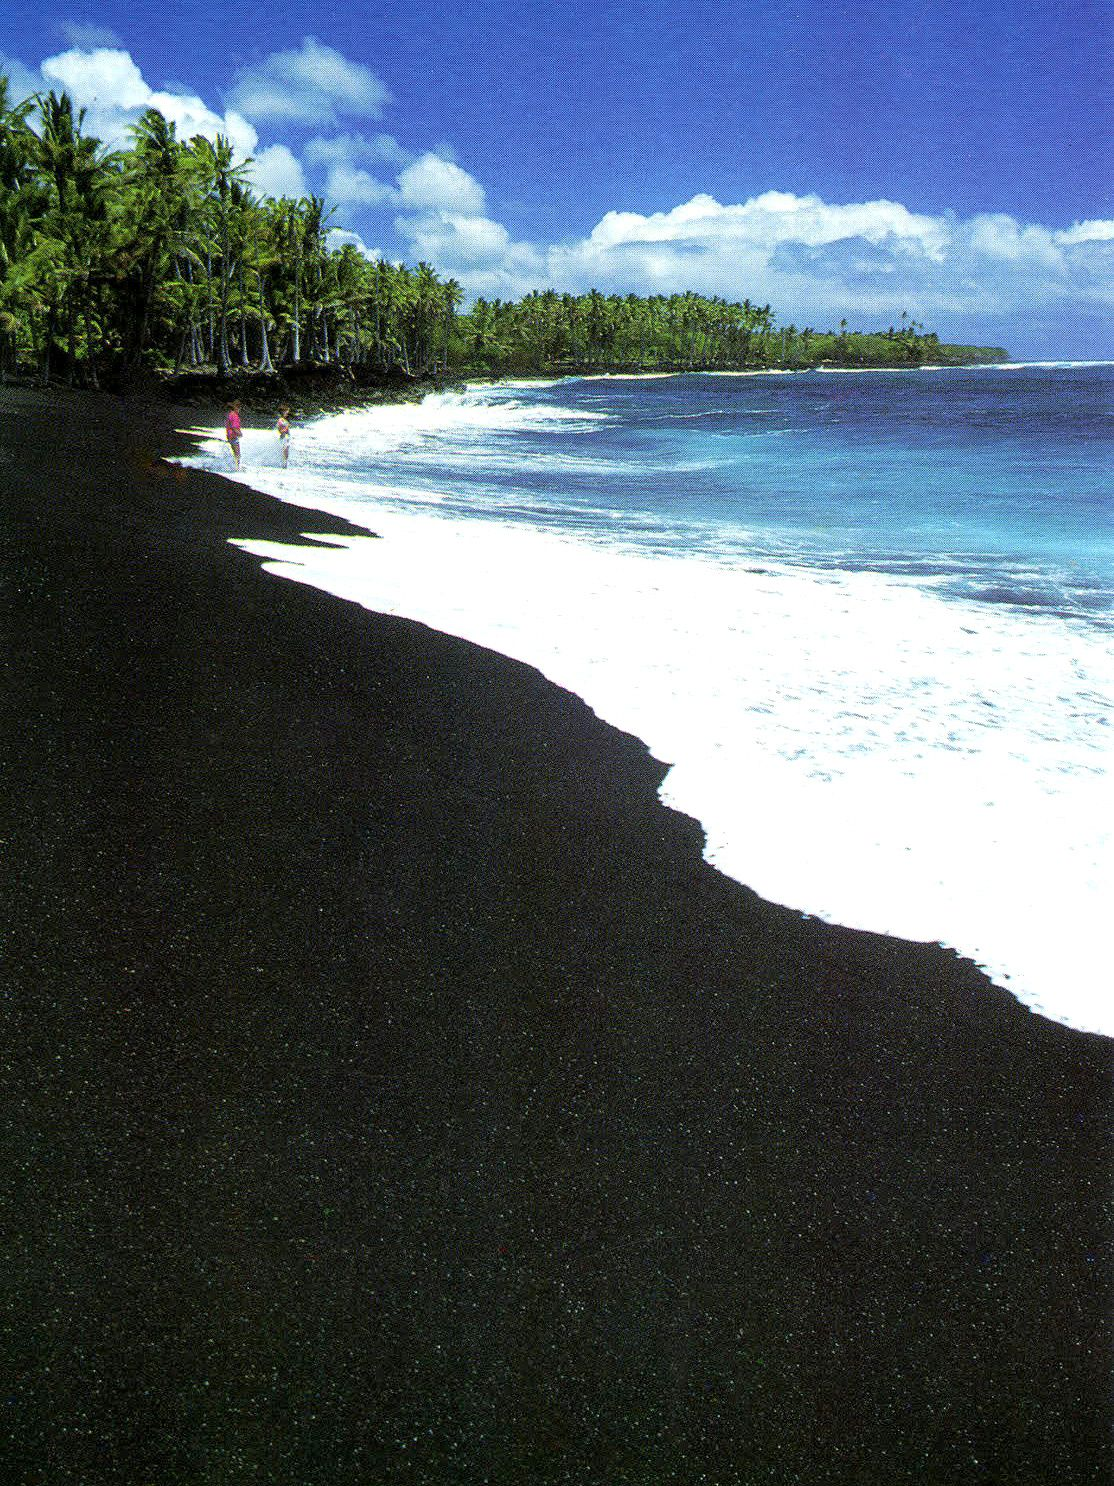 Black Sand Beach Hawaii So Cool And Weird I Think It Is Caused By The Types Of Rocks But Don T Know